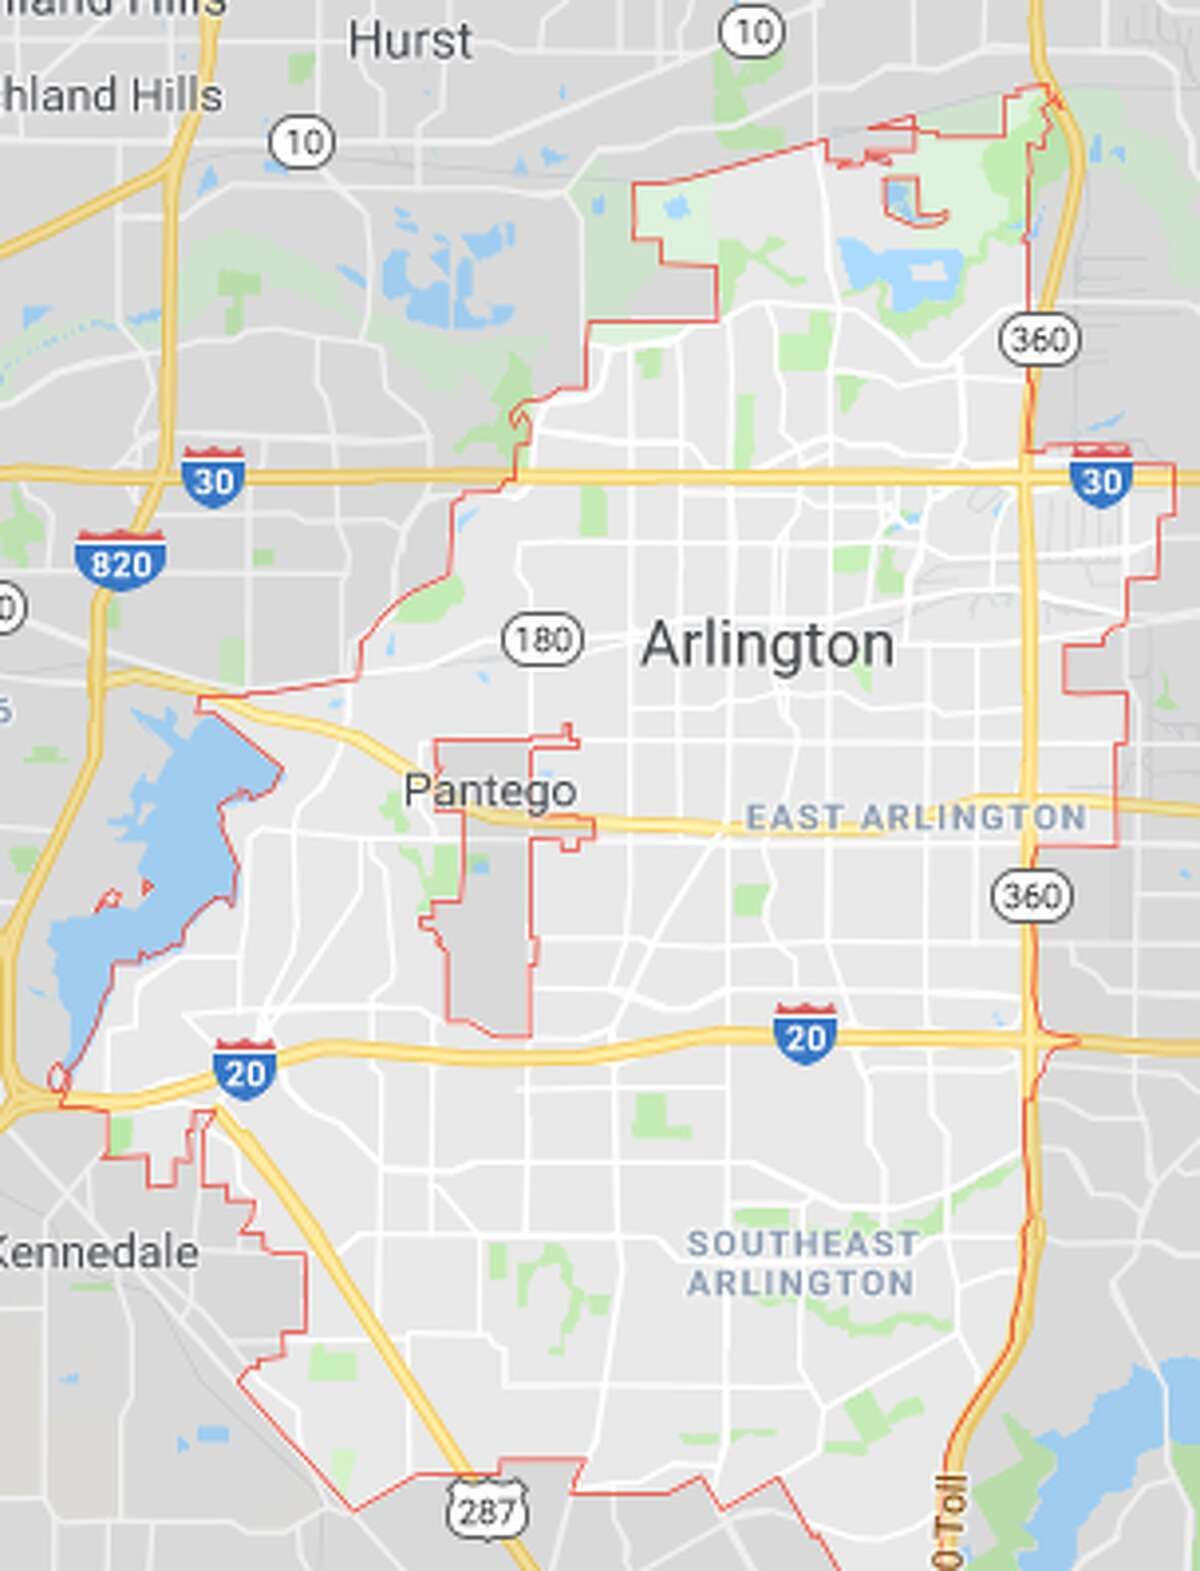 12. Arlington Median rent price: $1,232 Recommended gross annual income: $49,320 2018 median household income: $57,340 Income gap: $8,020